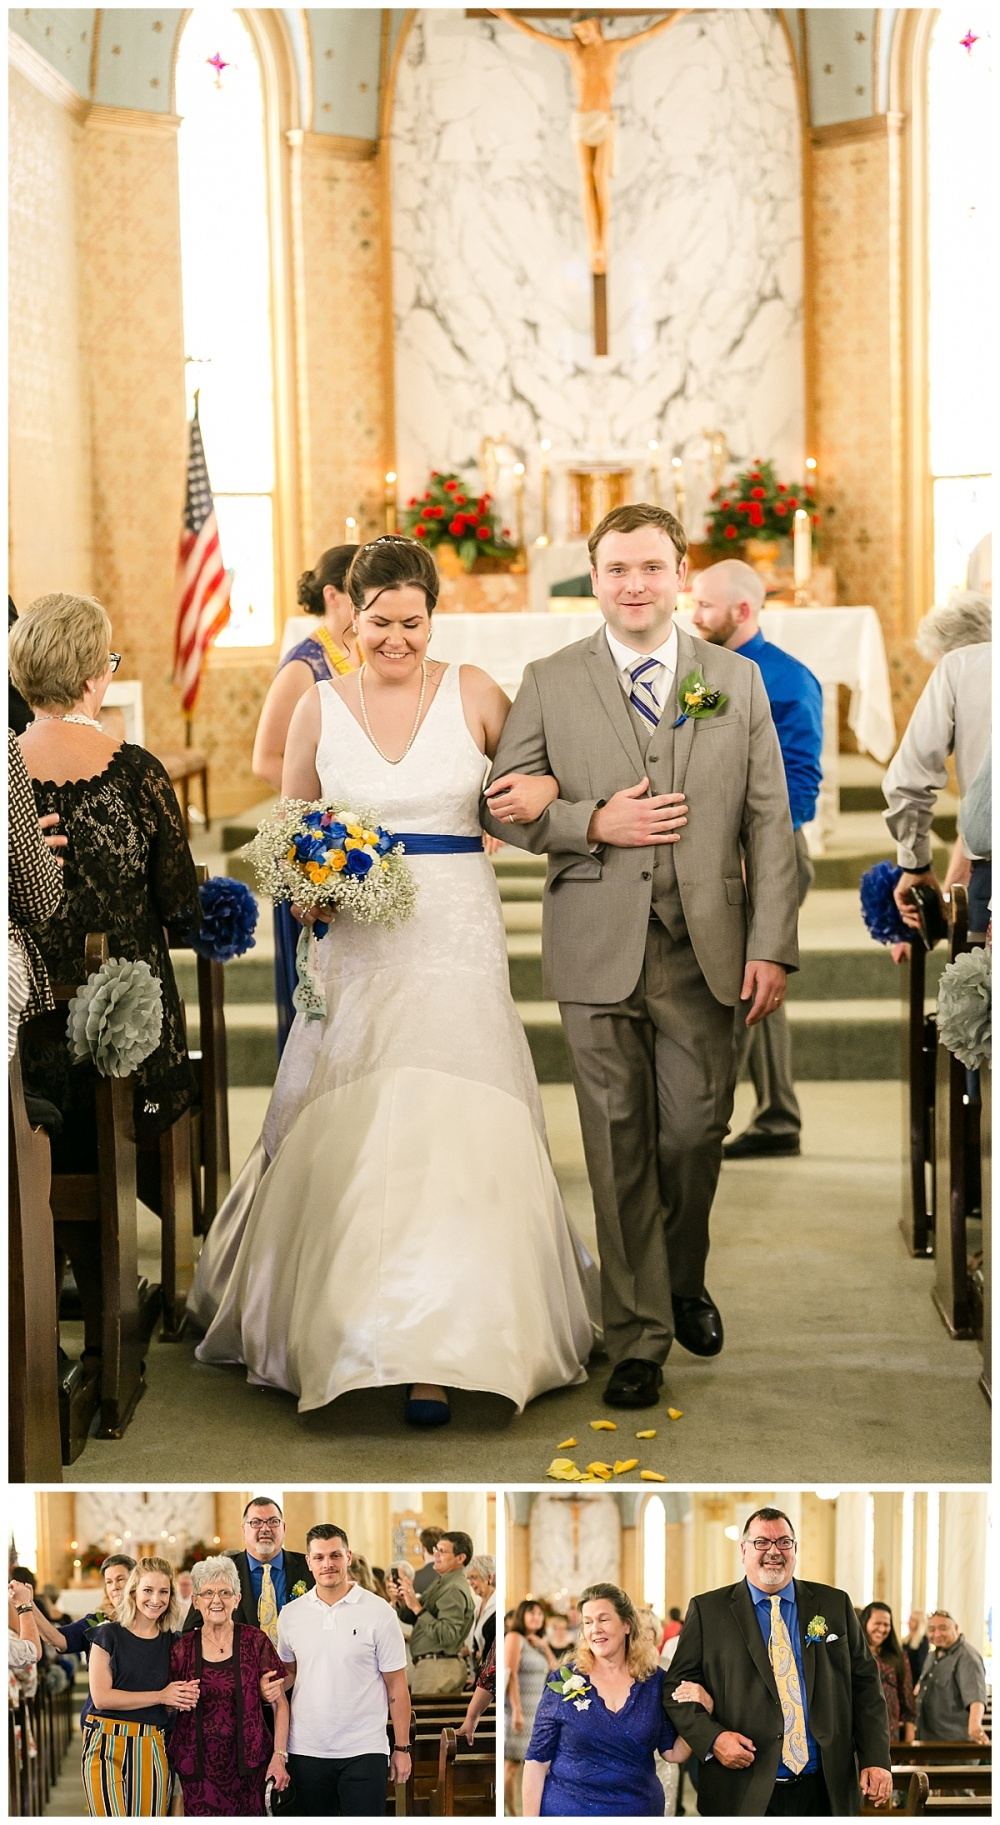 Texas-Wedding-Photographer-La-Coste-Our-Lady-Of-Grace-Church-Bride-Groom-Lego-Theme-Carly-Barton-Photography_0052.jpg